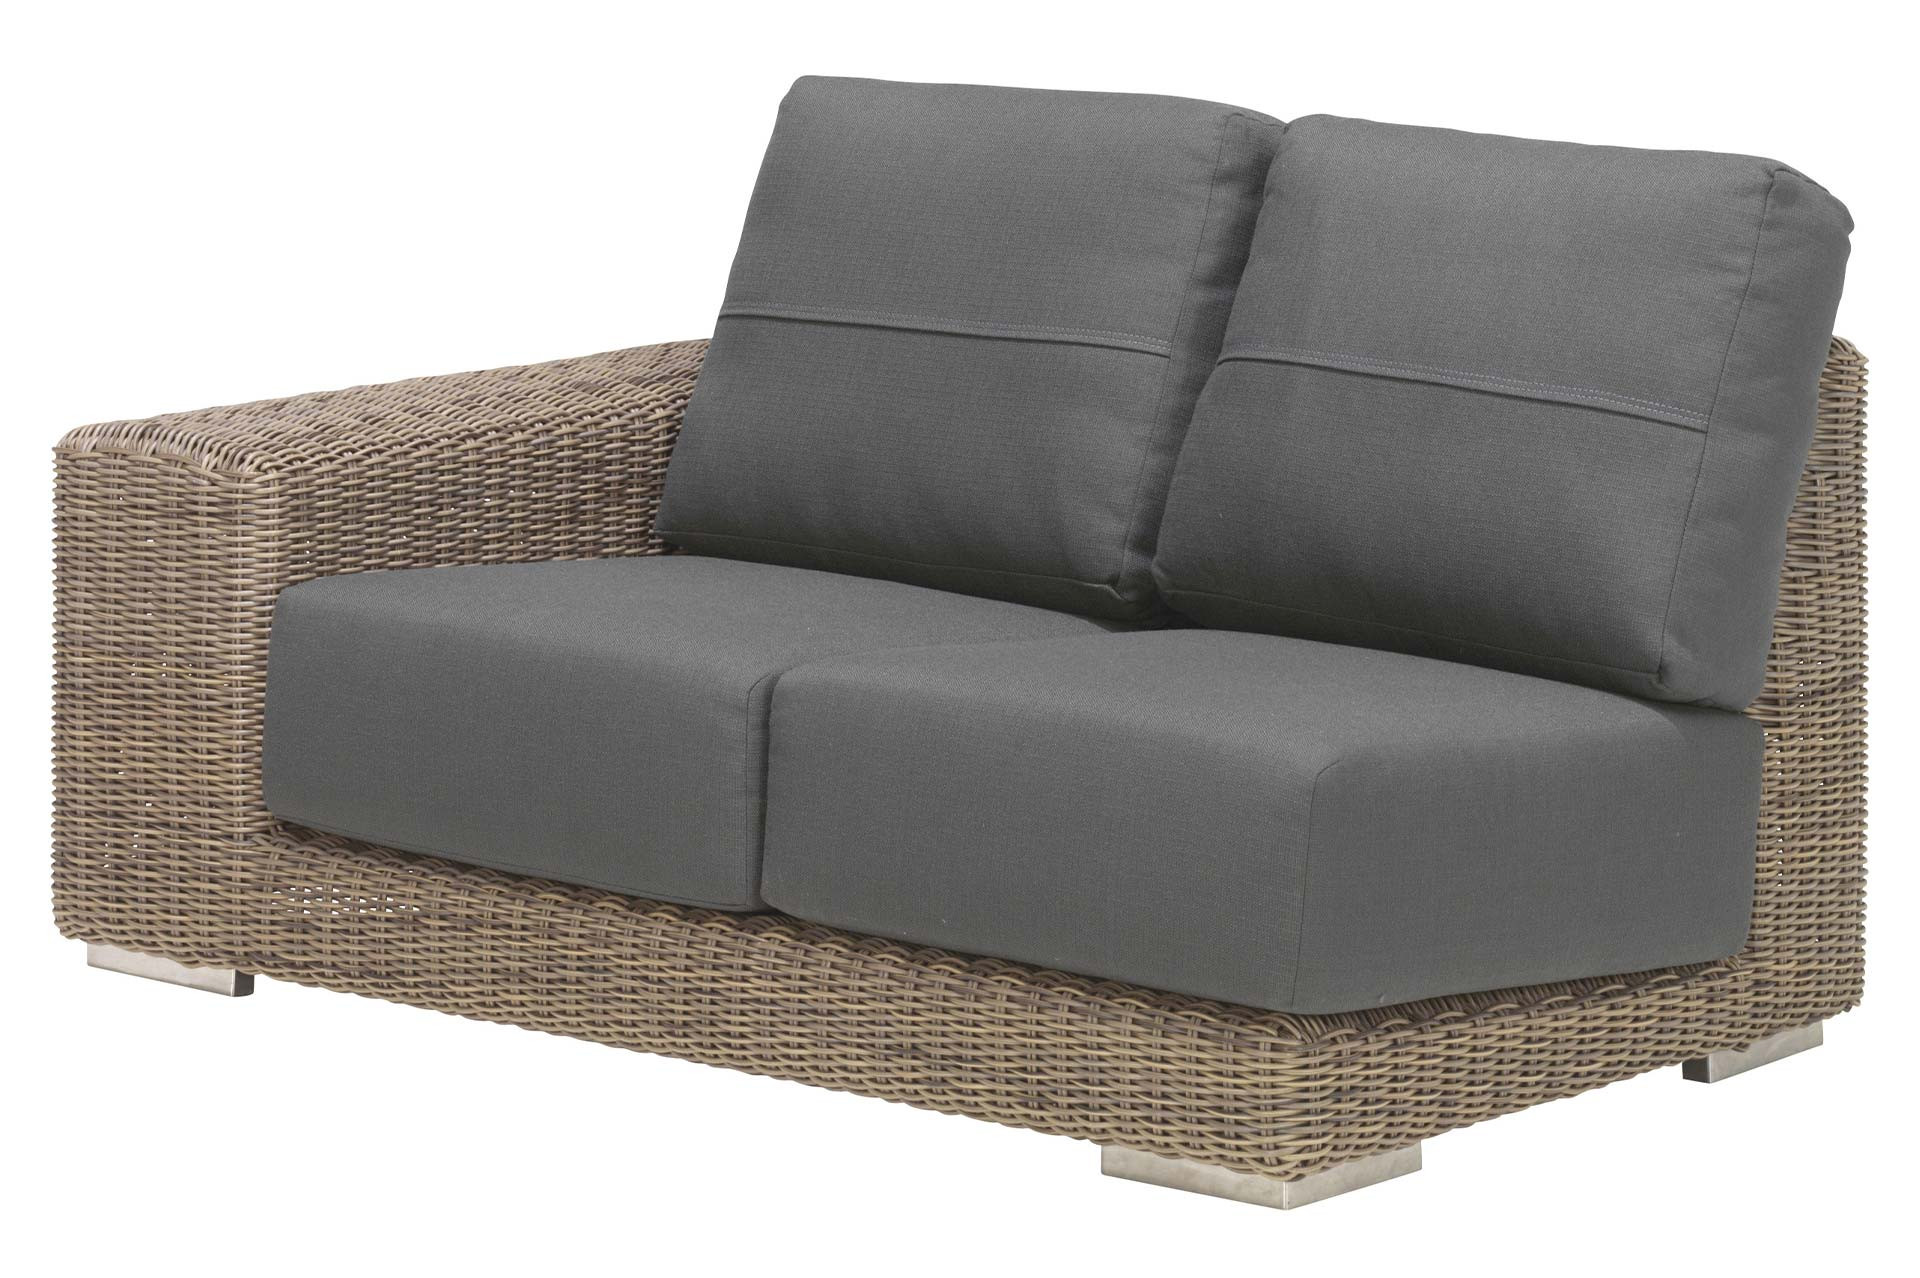 Kingston modular 2 seater right with 4 cushions